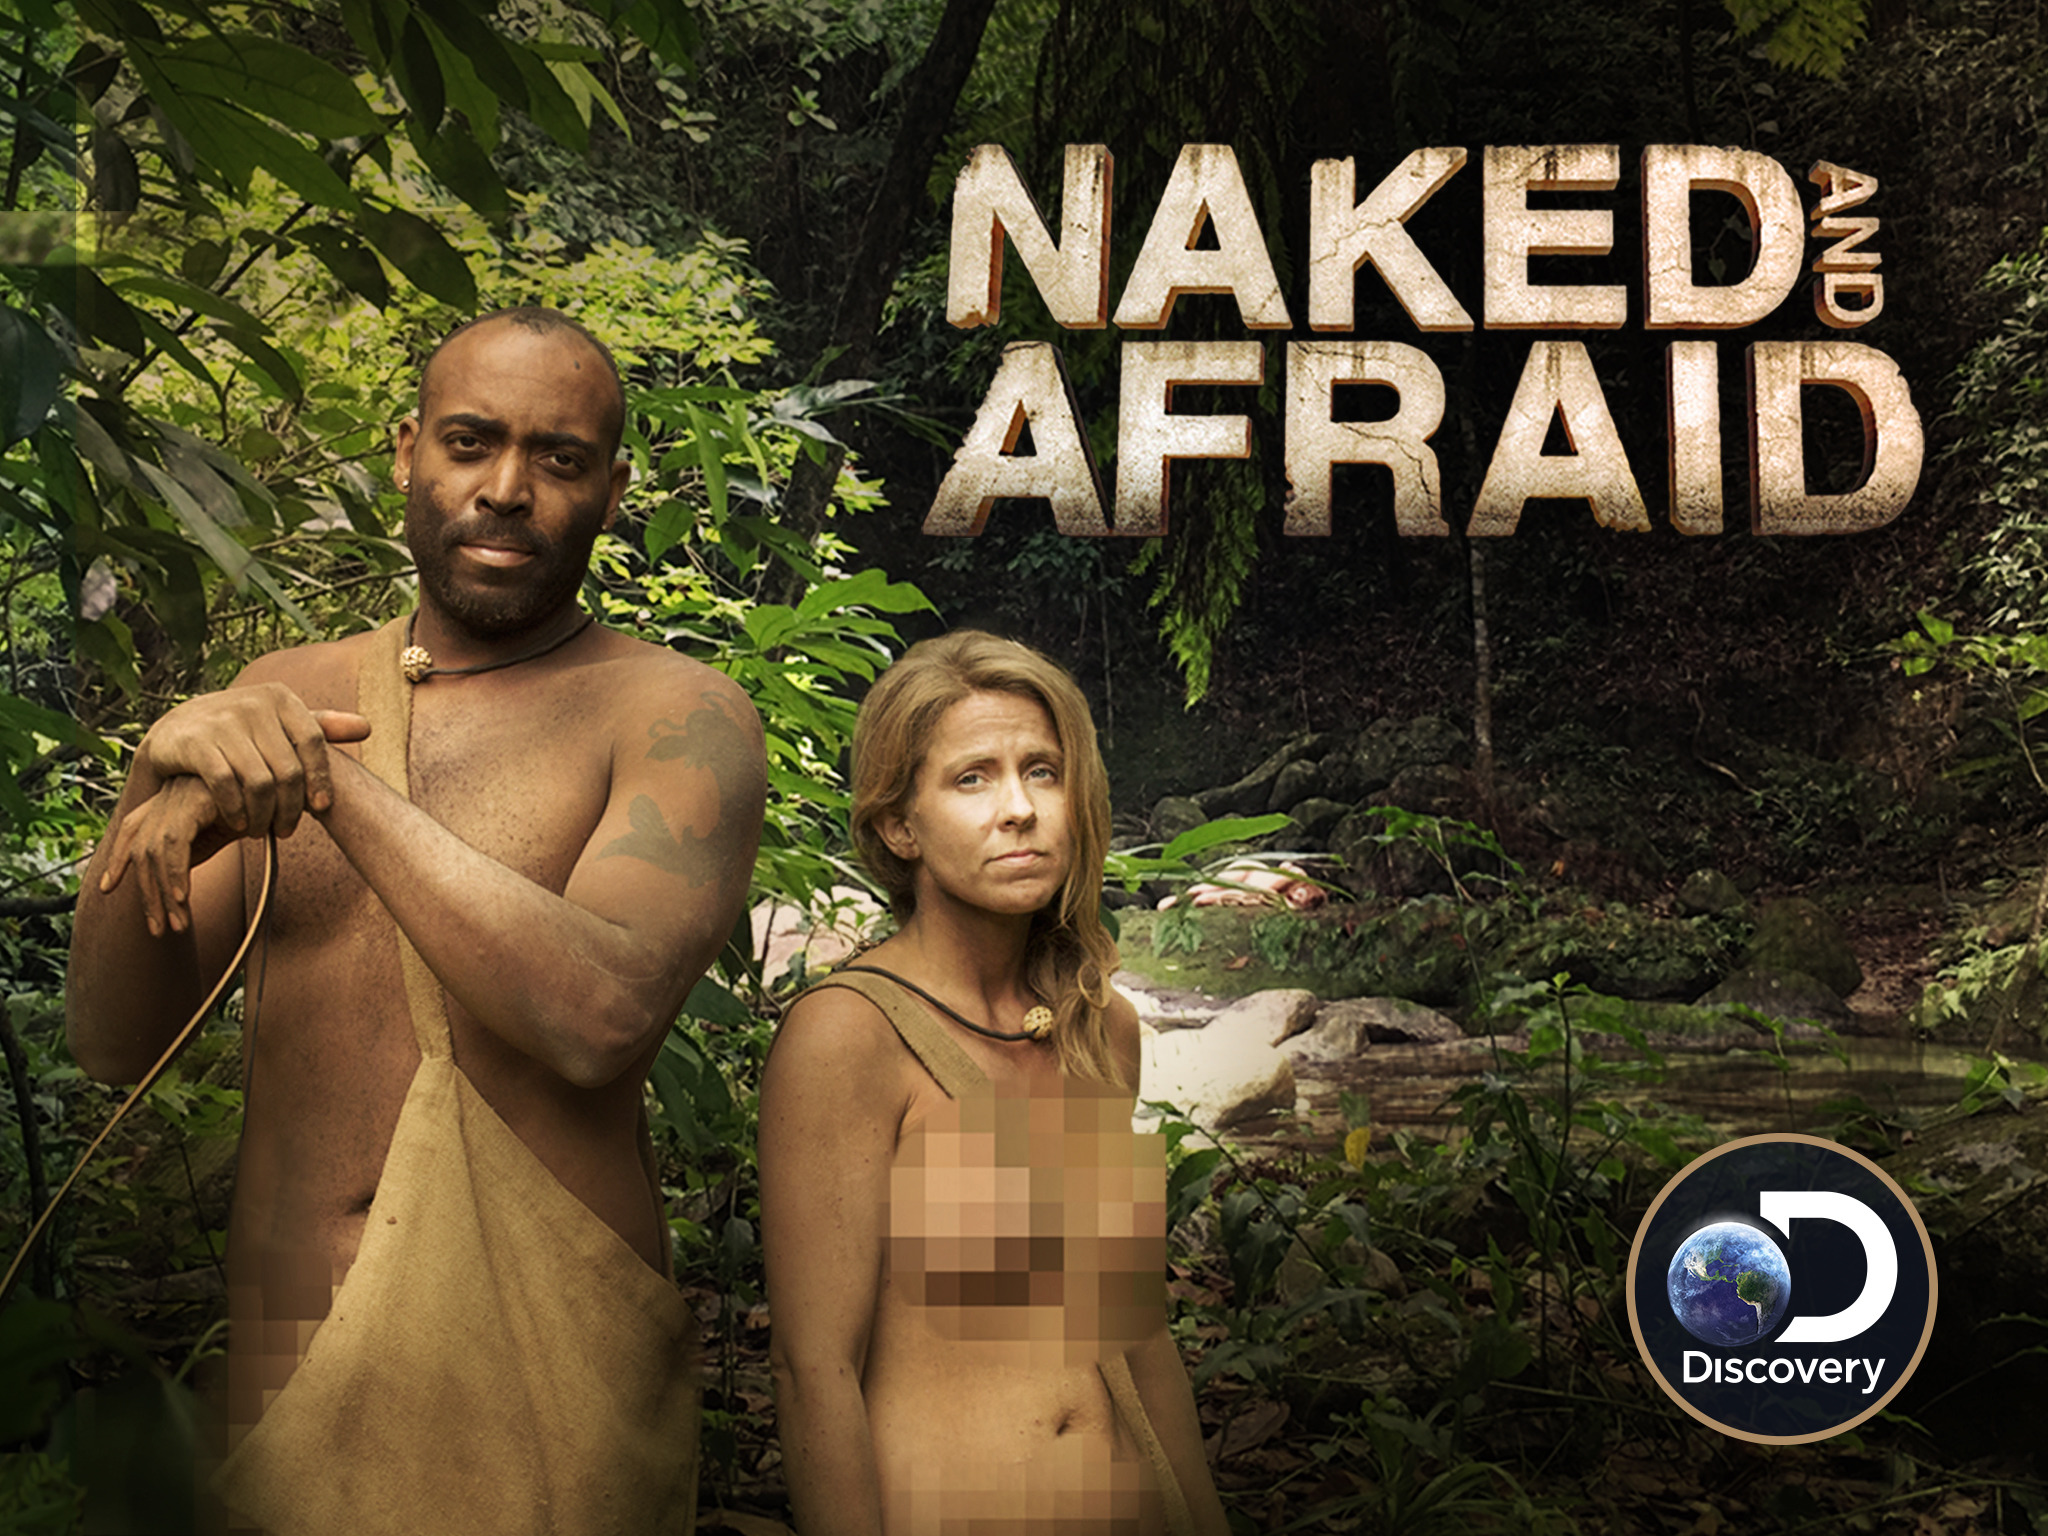 Girls sex naked and afraid cast before and after